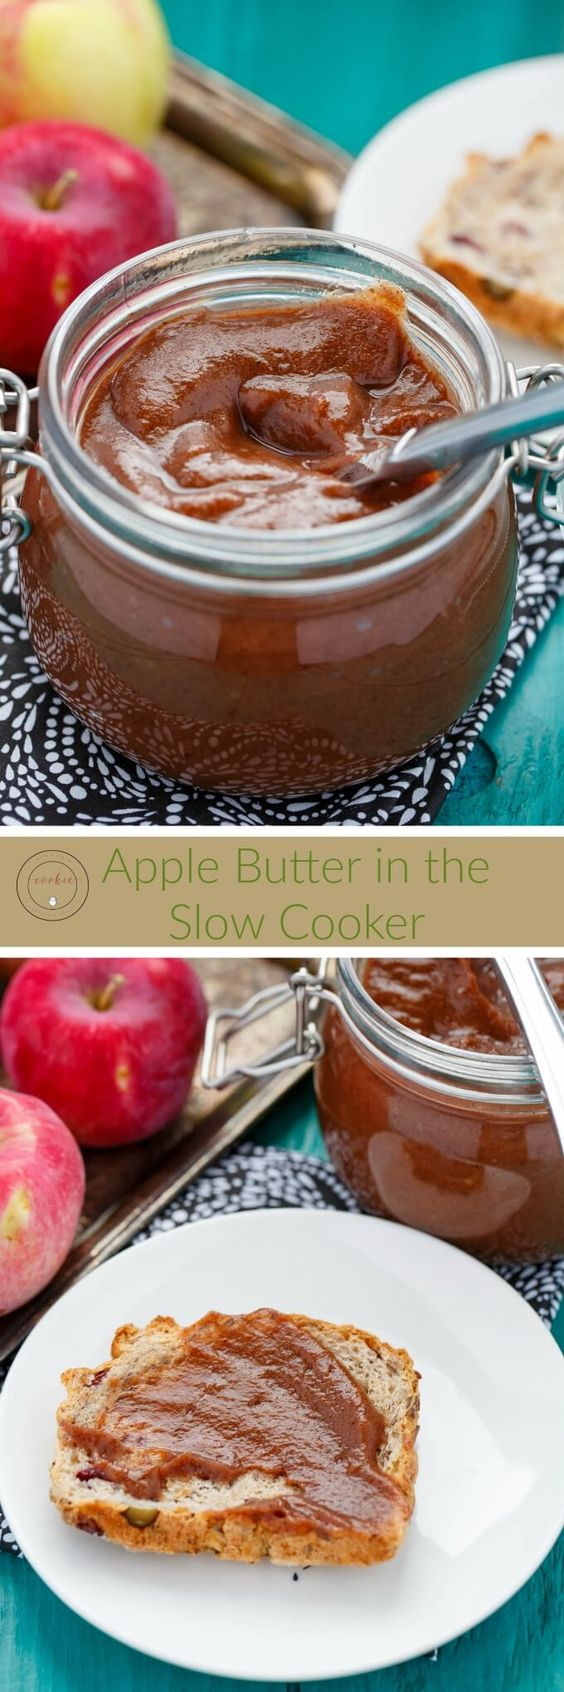 Apple Butter in the Slow Cooker | http://thecookiewriter.com | @thecookiewriter | #slowcooker | Homemade apple butter in the slow cooker is super easy and a great way to use up leftover apples! Completely vegan and gluten-free!